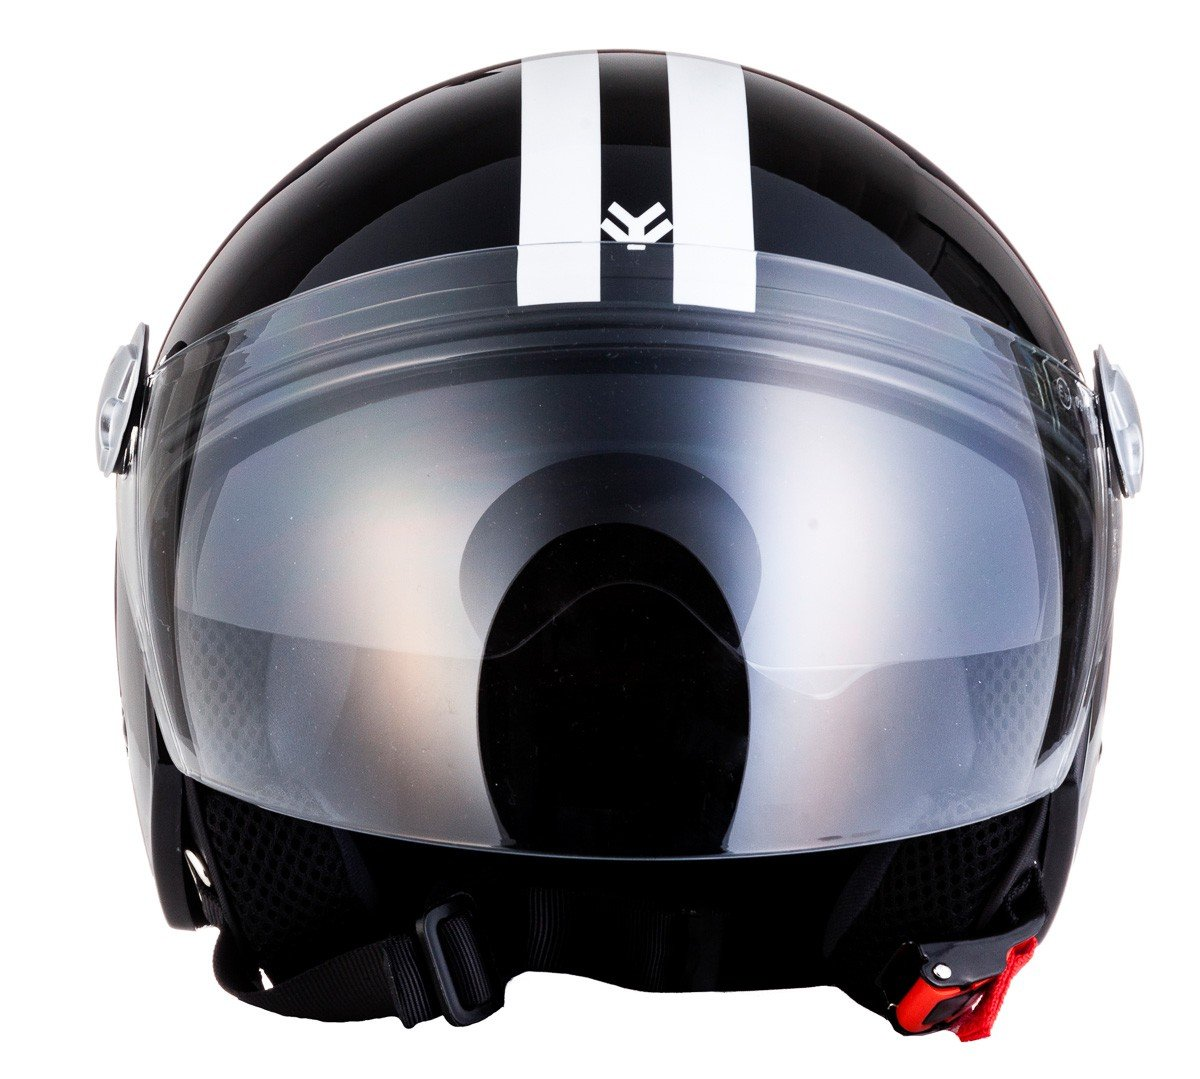 "/· Open Face Helmet /· Jet Motorbike Retro Pilot Scooter Motorcycle /· ECE certified /· Separate Visors /· Click-n-Secure Clip /· Carrier Bag /· XS 53-54cm Armor /· AV-63 /""Italy Creme/"" yellow"